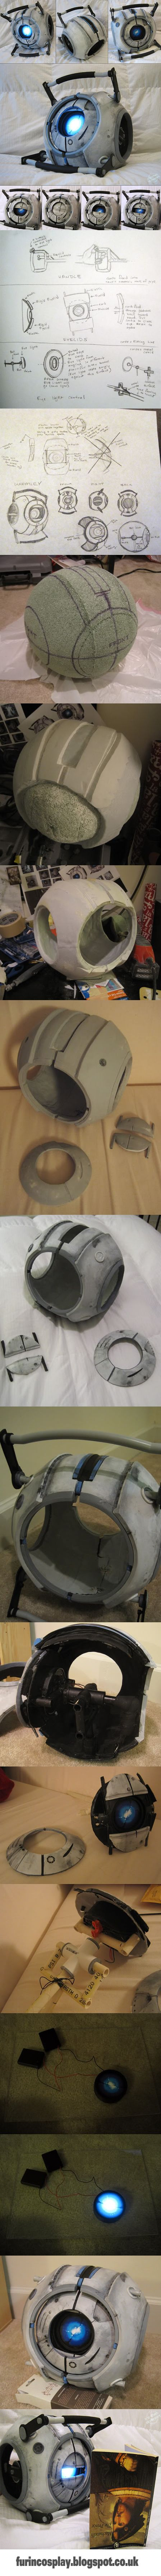 Wheatley from the video game Portal. Creative geek. Found at; http://furincosplay.blogspot.co.uk/2011/07/wheatley.html Image created for Pinterest by http://fps-x-games.com. #wheatley #portal #videogame